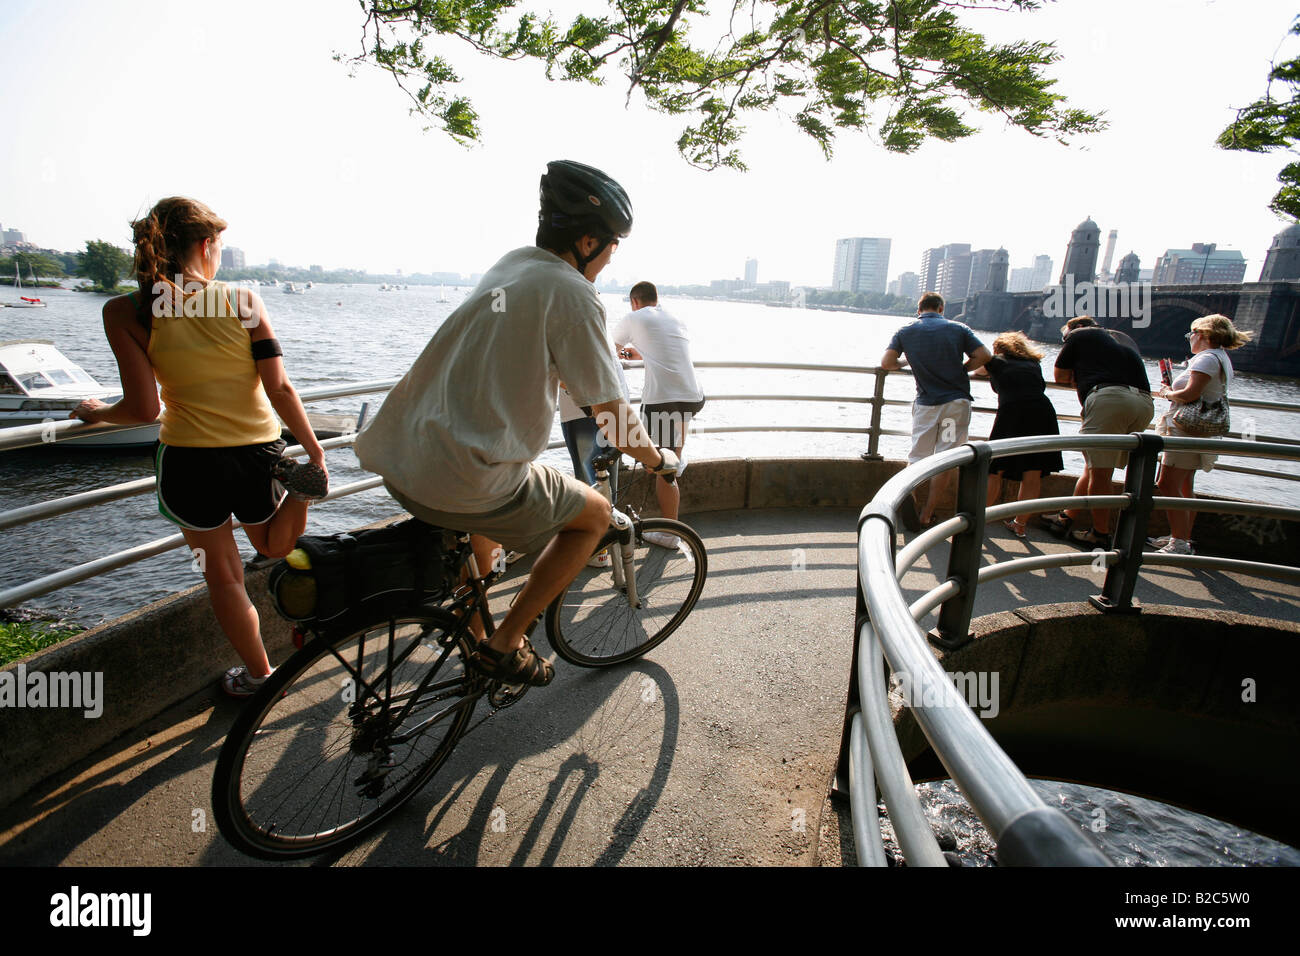 A jogger bicyclist and pedestrians are seen on a walkway on the banks of the Charles River in Boston - Stock Image